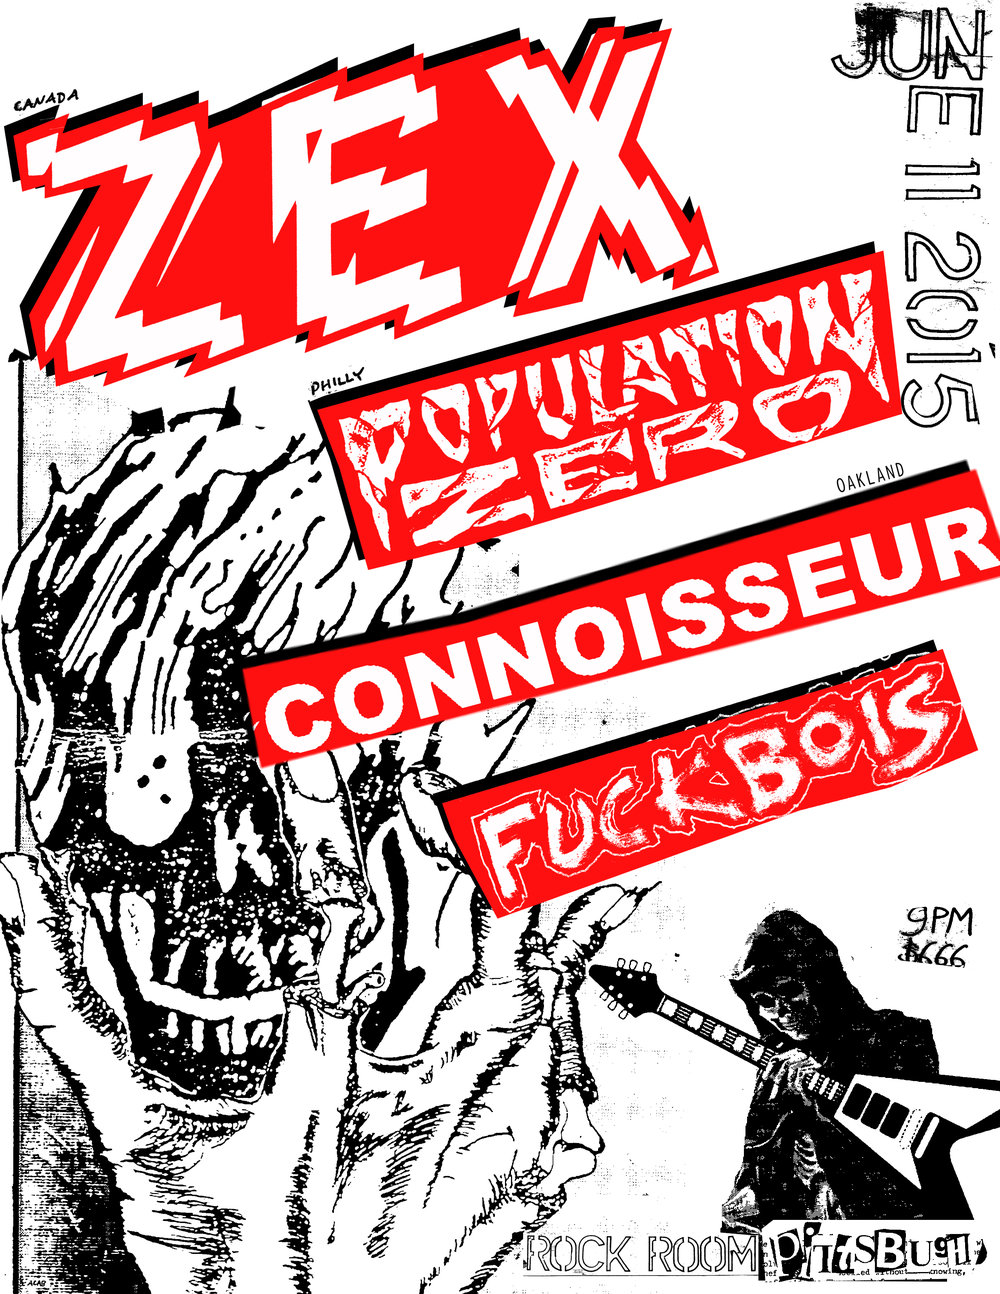 flyer-15.06.11-pittsburgh-zex-red.jpg